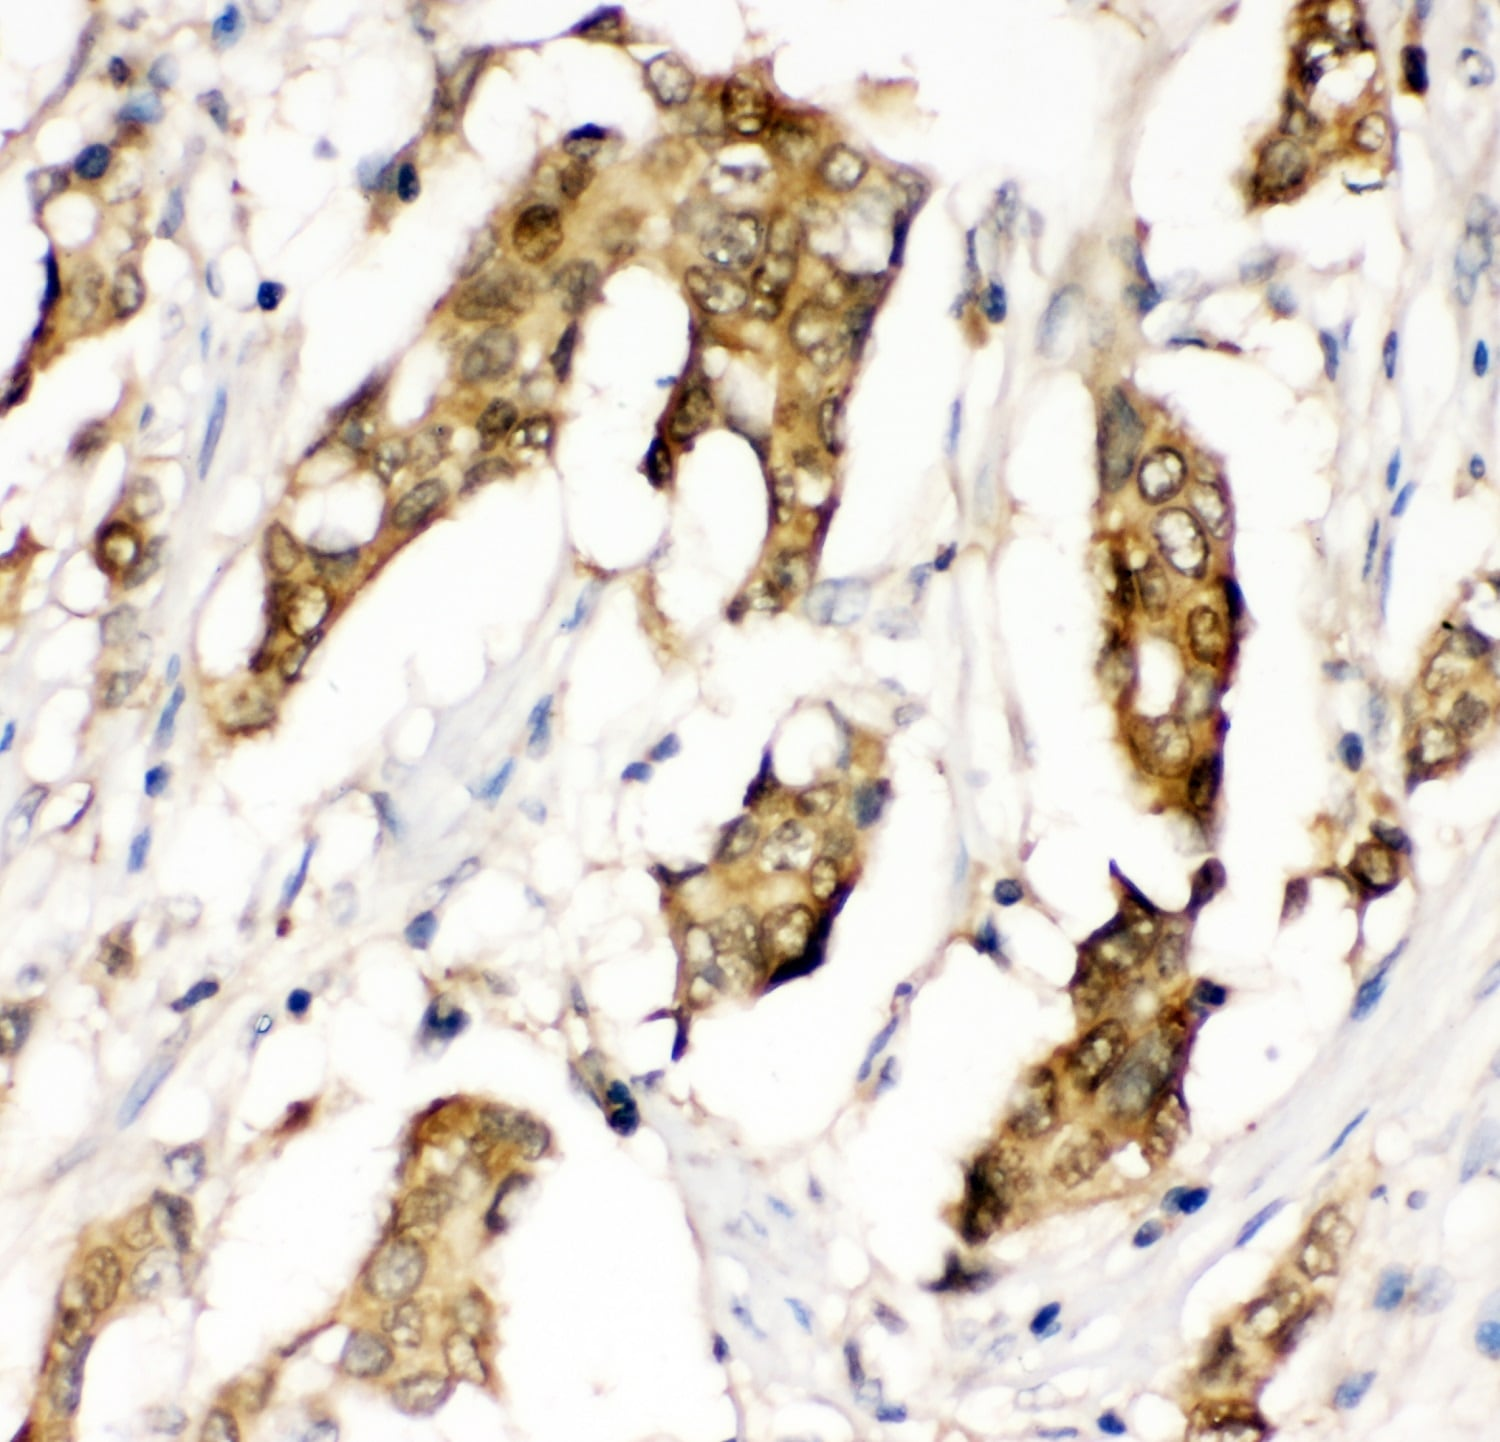 Immunohistochemistry (Formalin/PFA-fixed paraffin-embedded sections) - Anti-MIF antibody (ab65869)